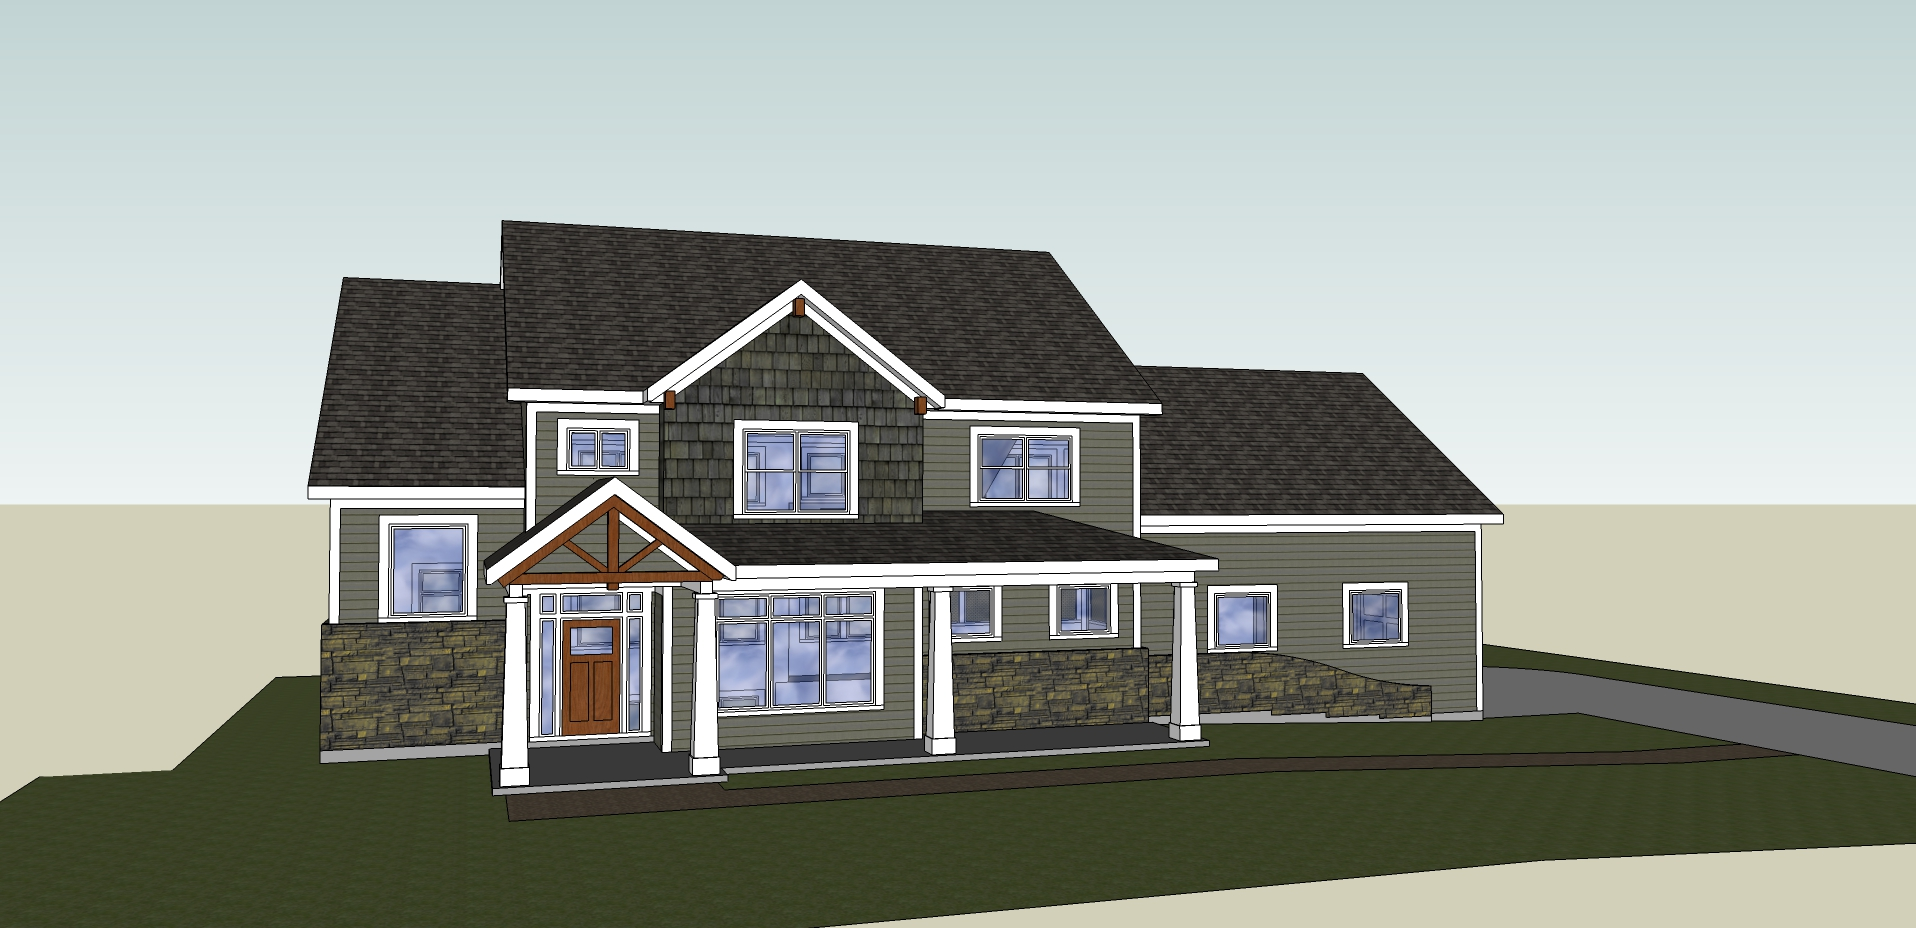 new designs in sketchup by house designs on november 1 2012